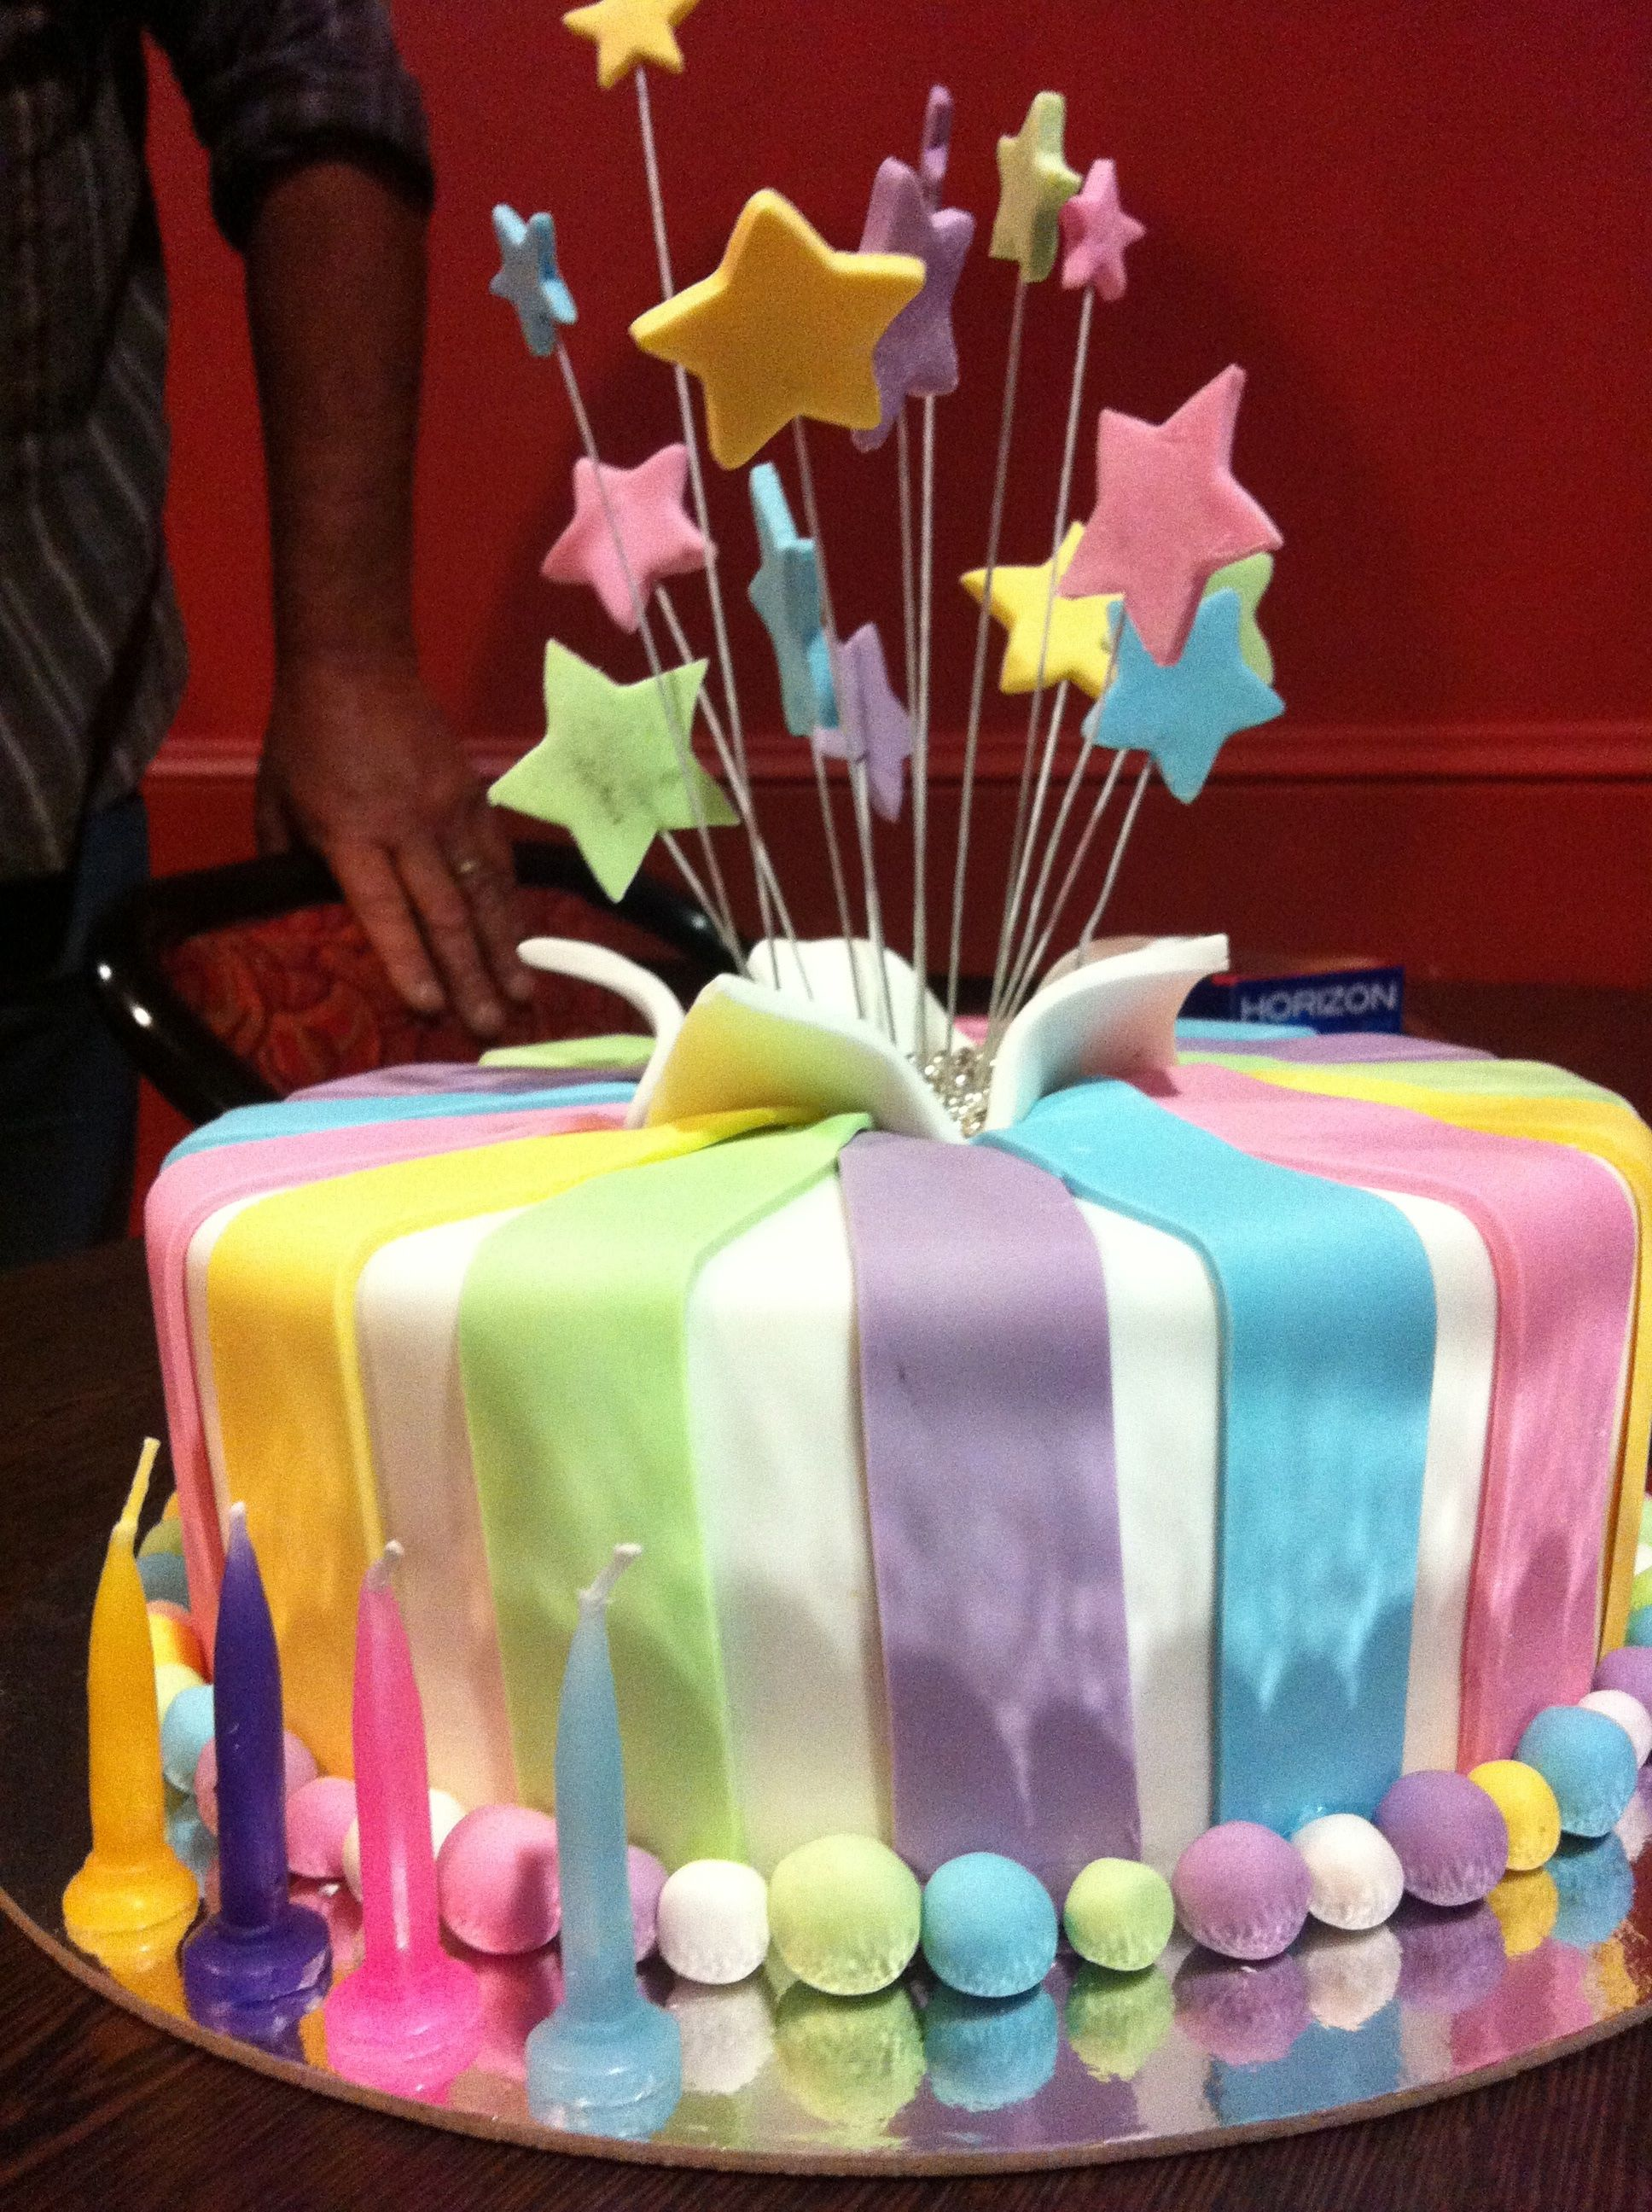 Colorful Fondant Candle Birthday Cake - CakeCentral.com